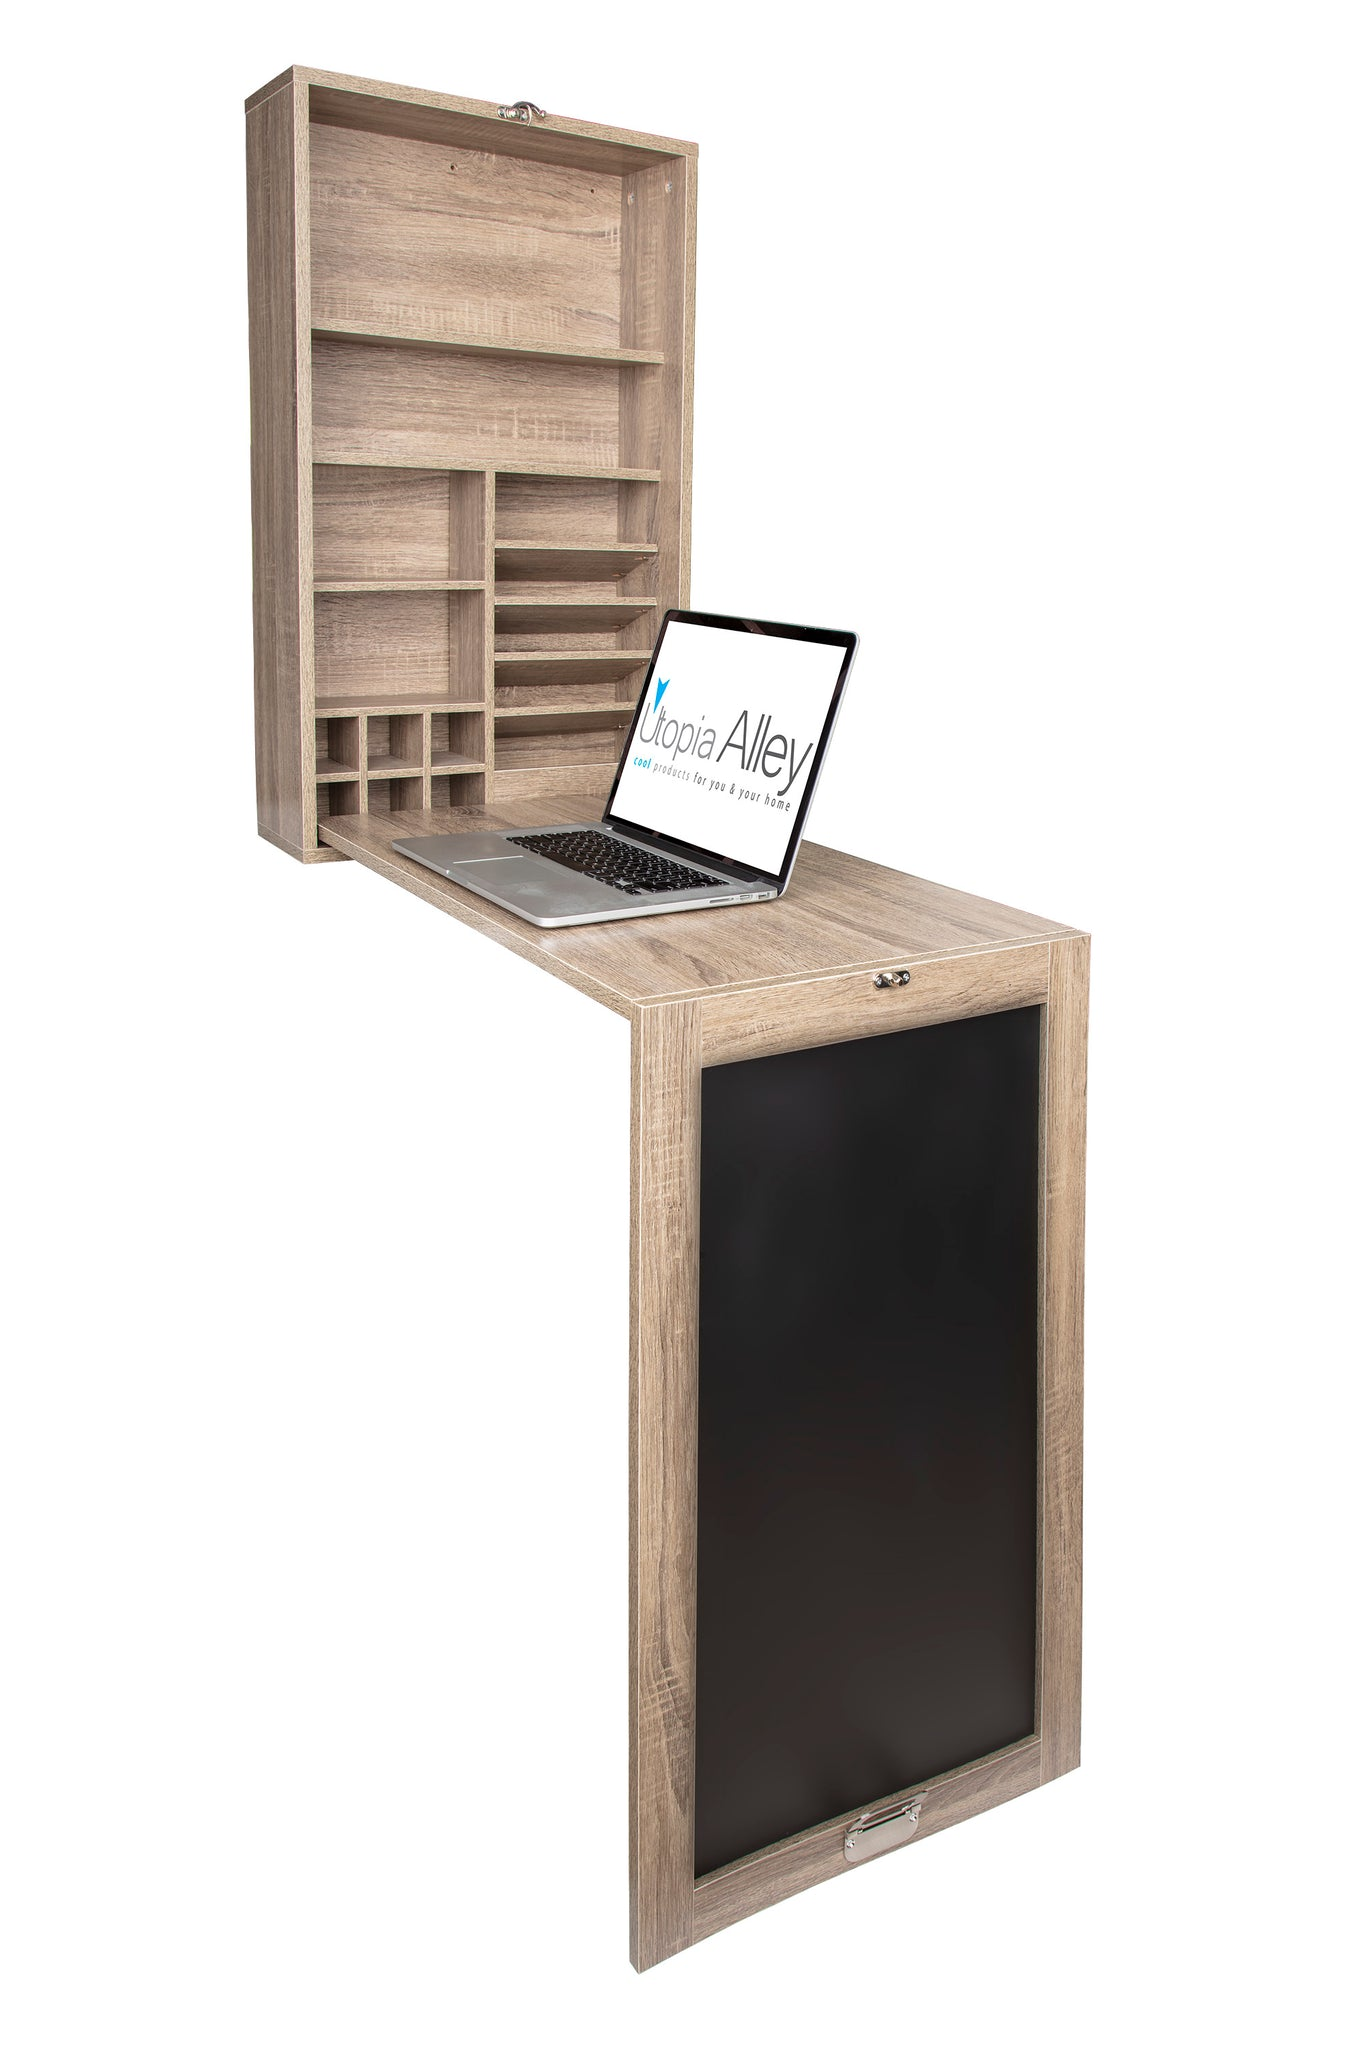 Loft97 Collapsible Fold Down Desk Table/Wall Cabinet with Chalkboard, Multi-Function Computer Desk, Writing Desk Home Office Wood Desk, Black & Gray/Brown weathered oak